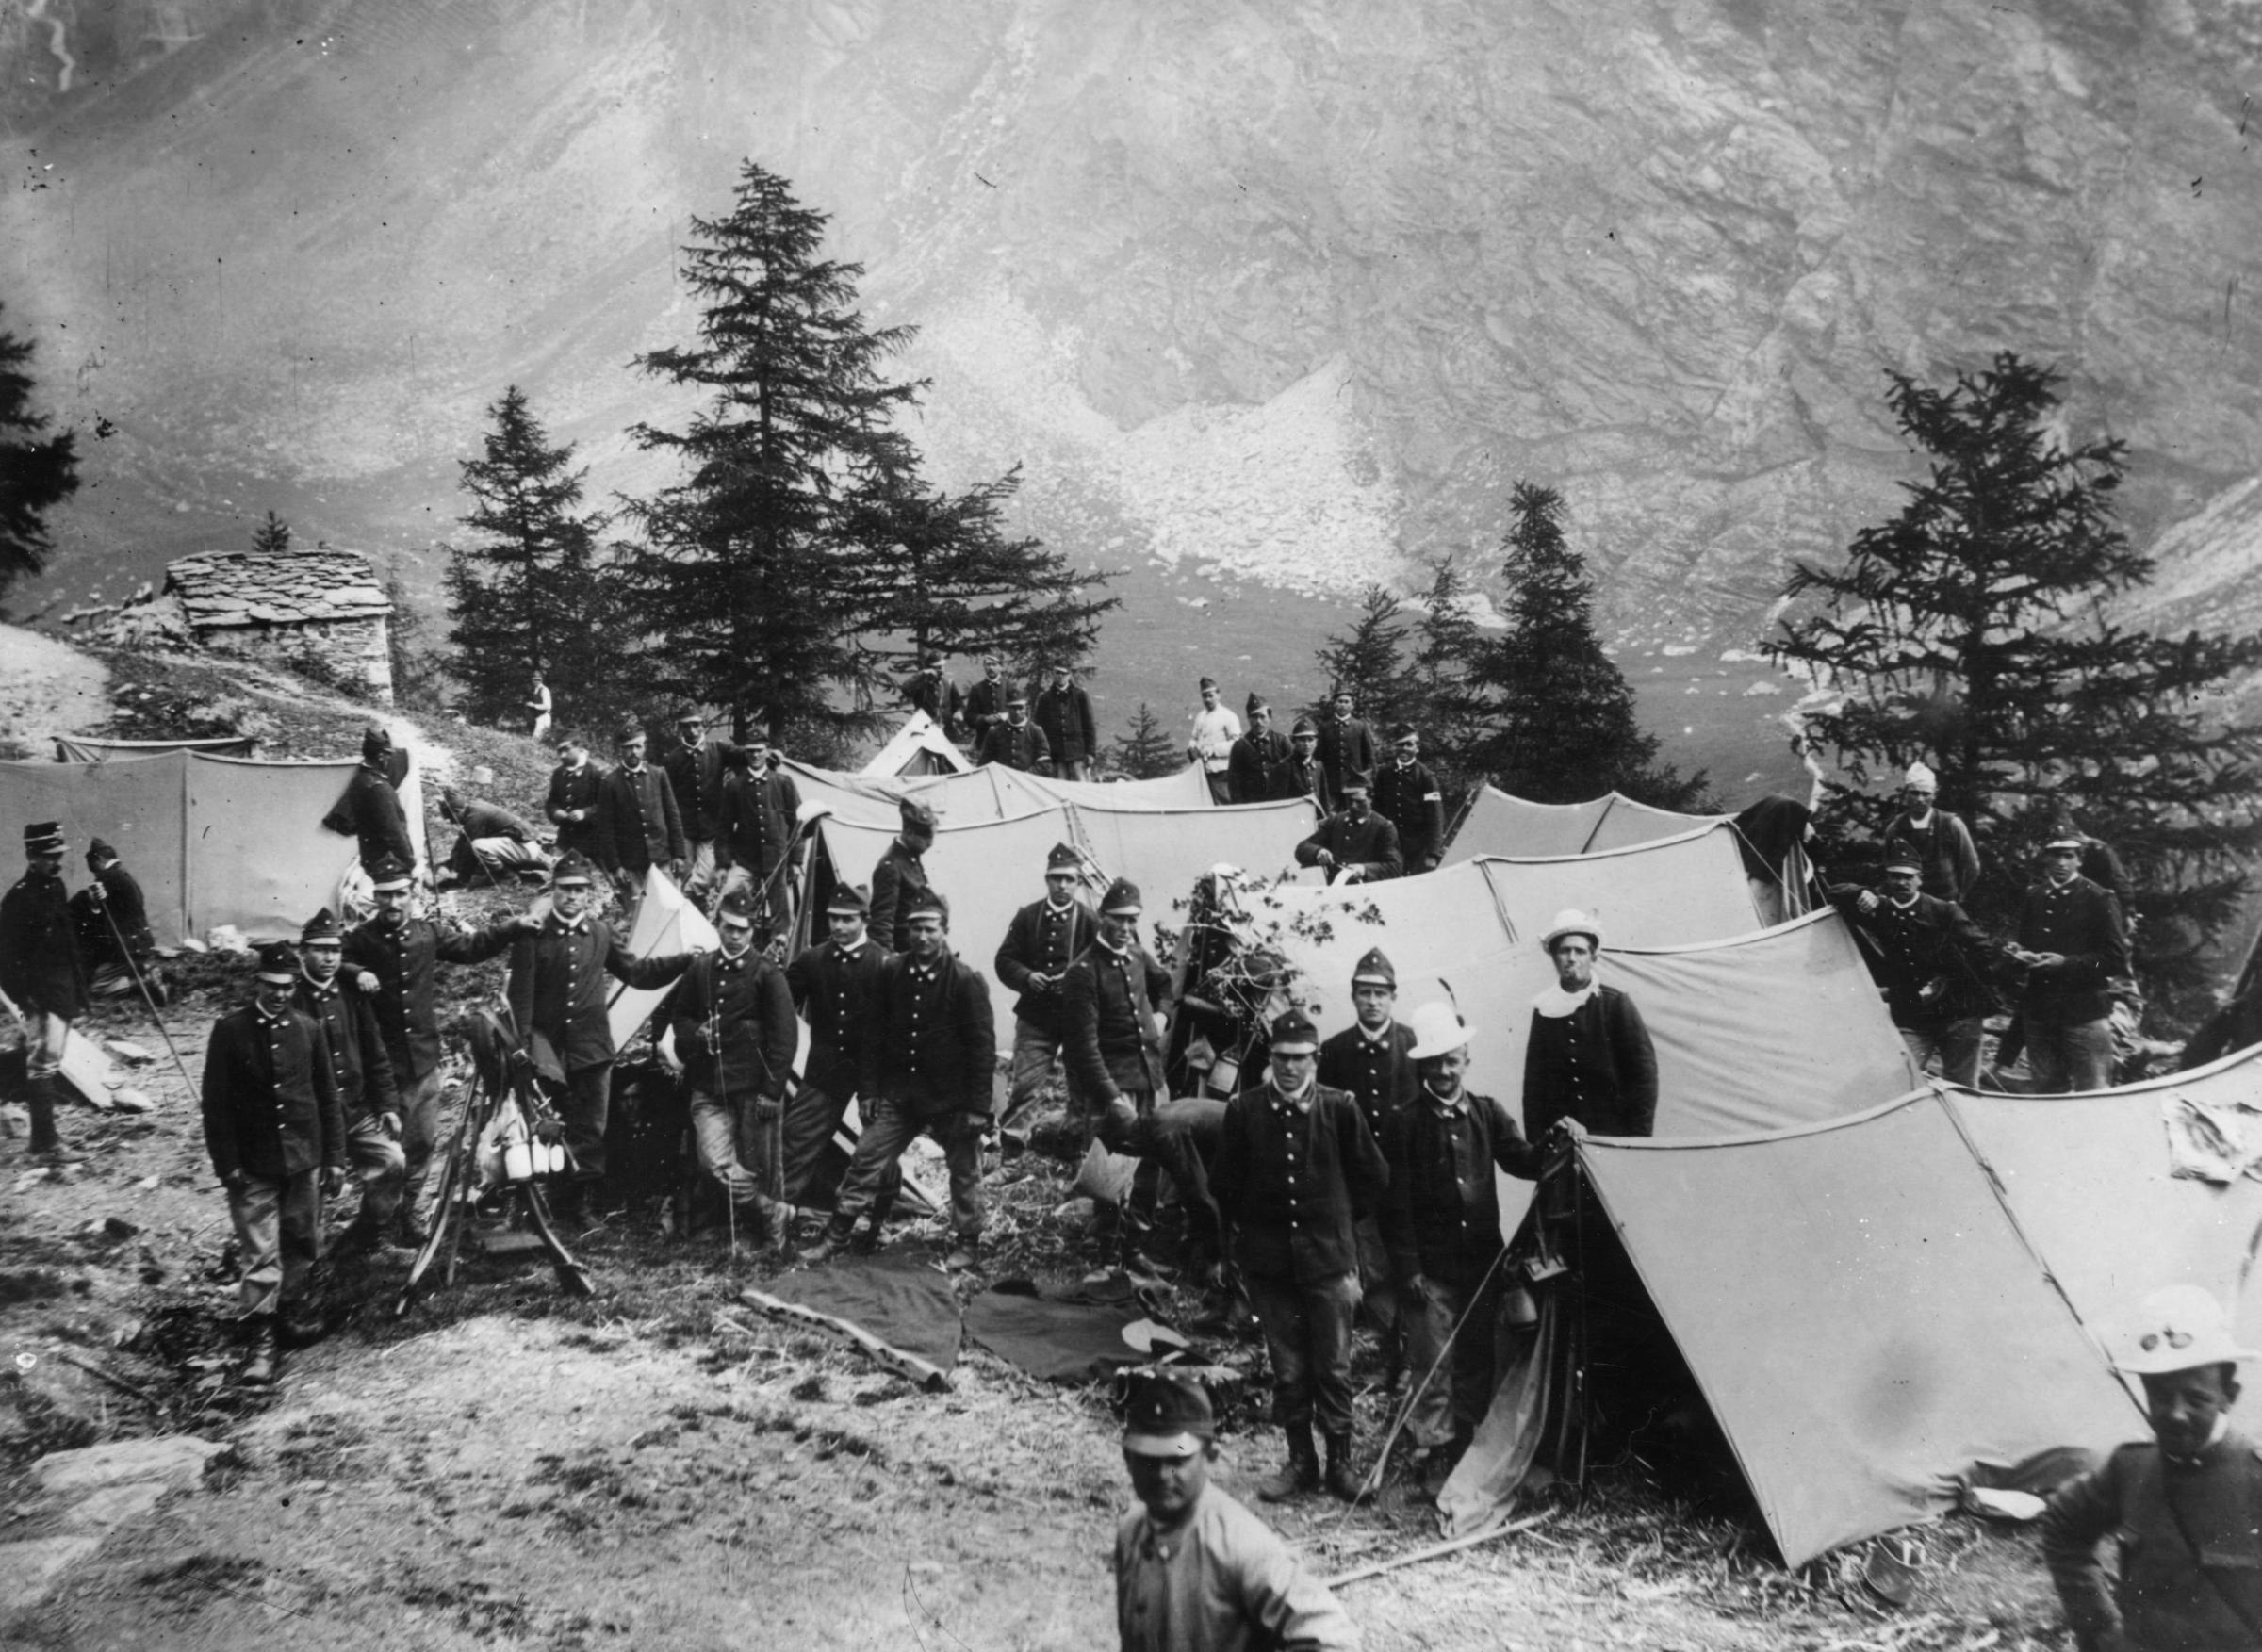 circa 1914: A group of Alpine Infantry soldiers camped at the foot of Mount Vilau in the Italian Alps during World War I. (Photo by Hulton Archive/Getty Images)